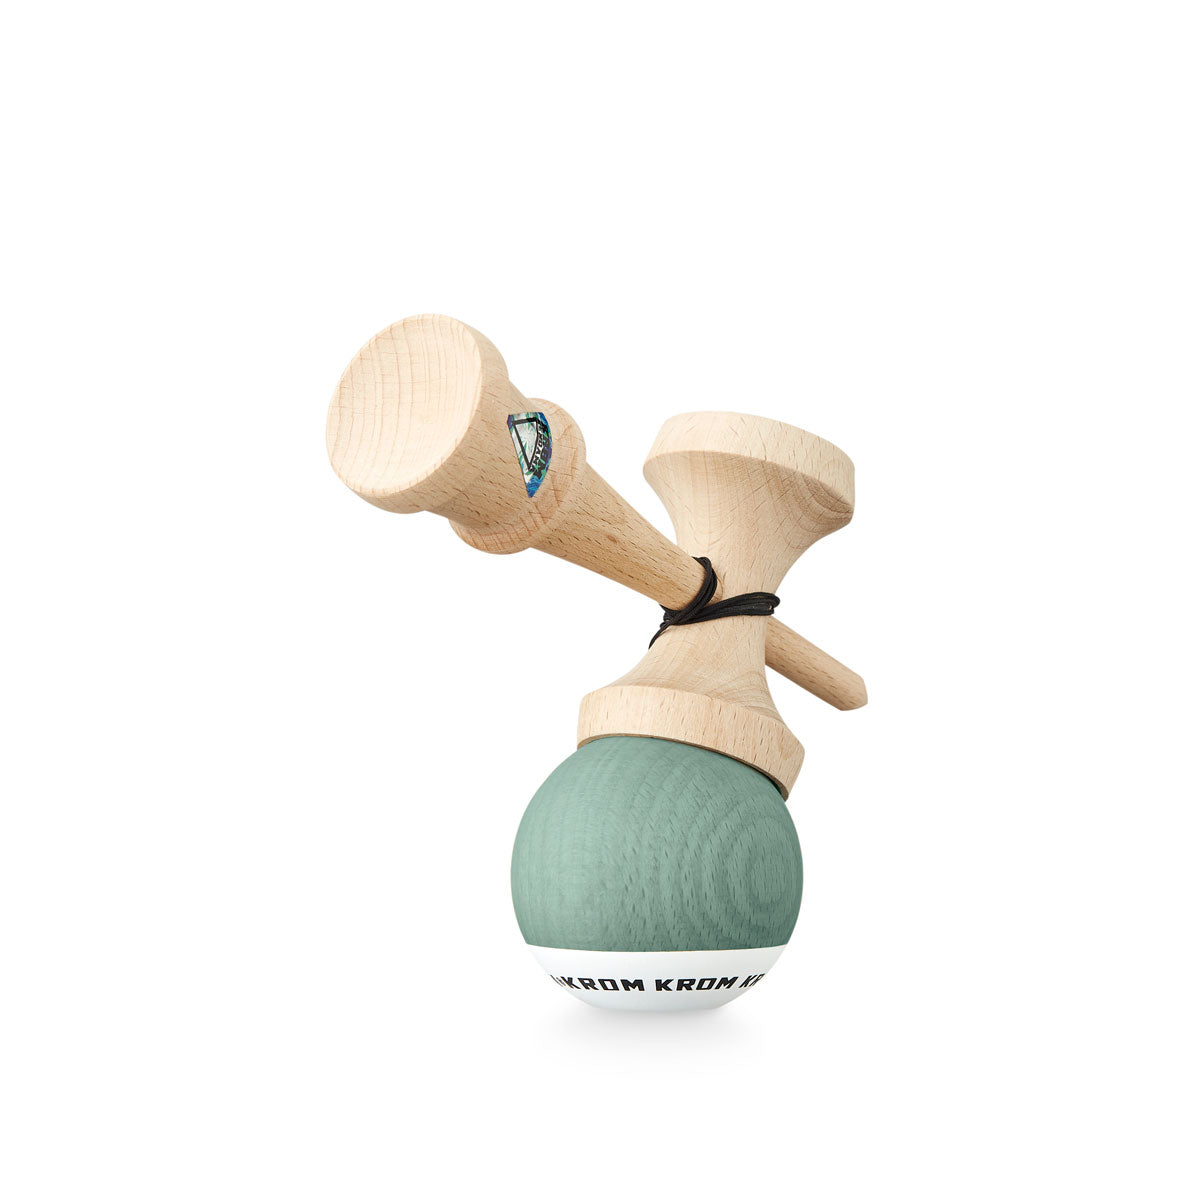 Limited Edition KROM POP Pistachio Kendama loon